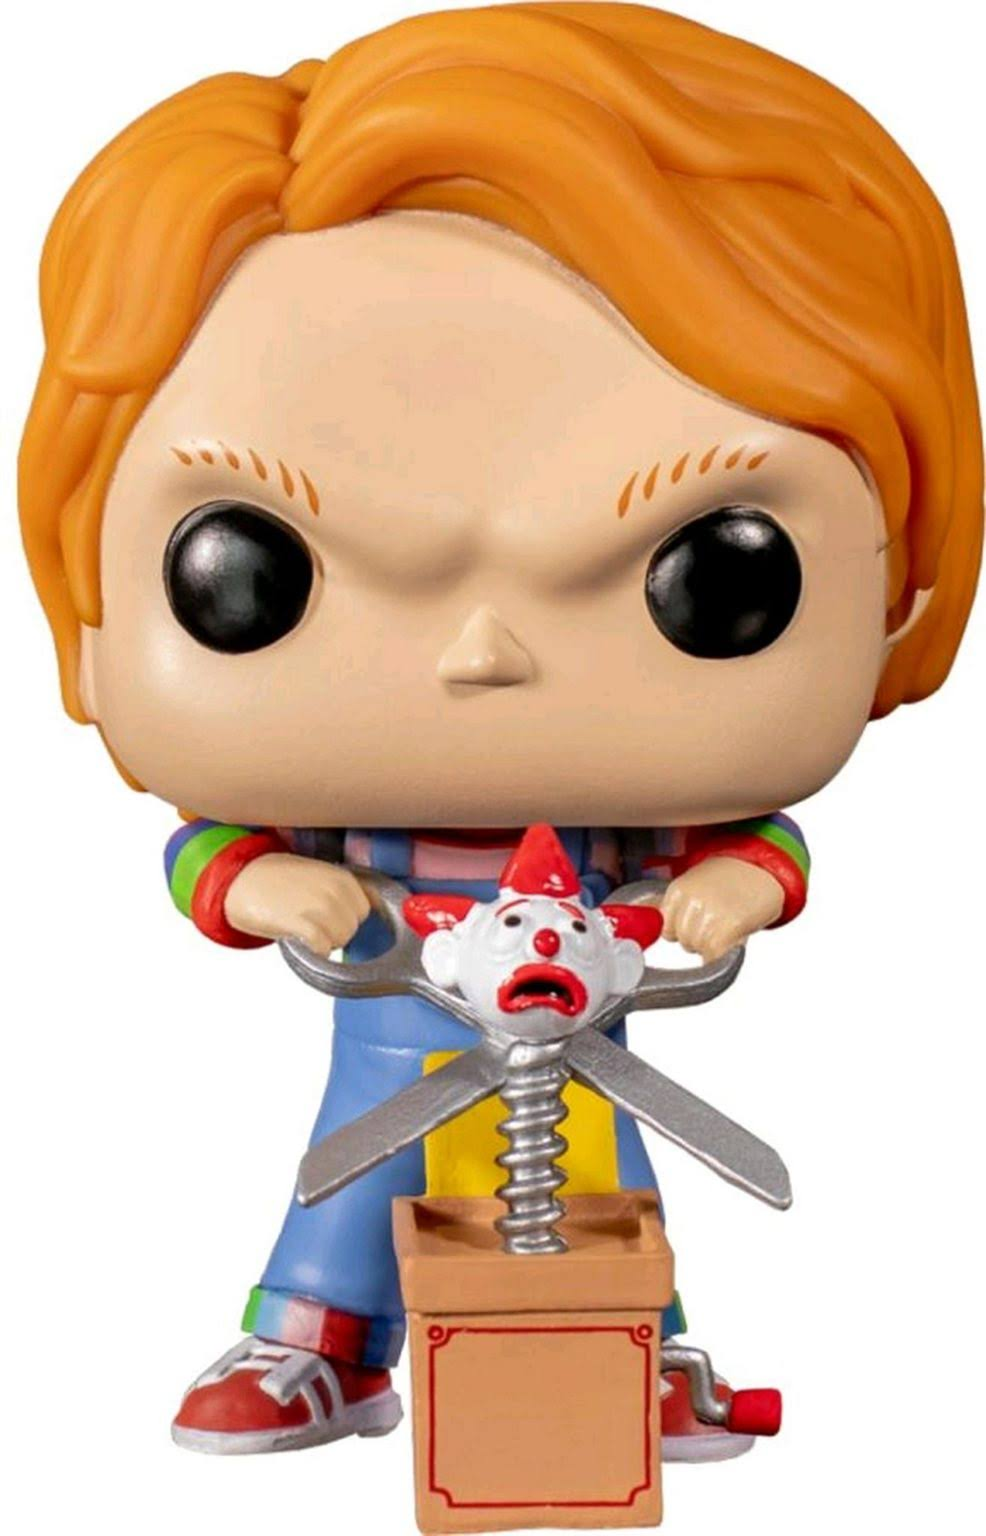 Pop! Movies Chucky with Buddy and Scissors Pop! Vinyl Figure